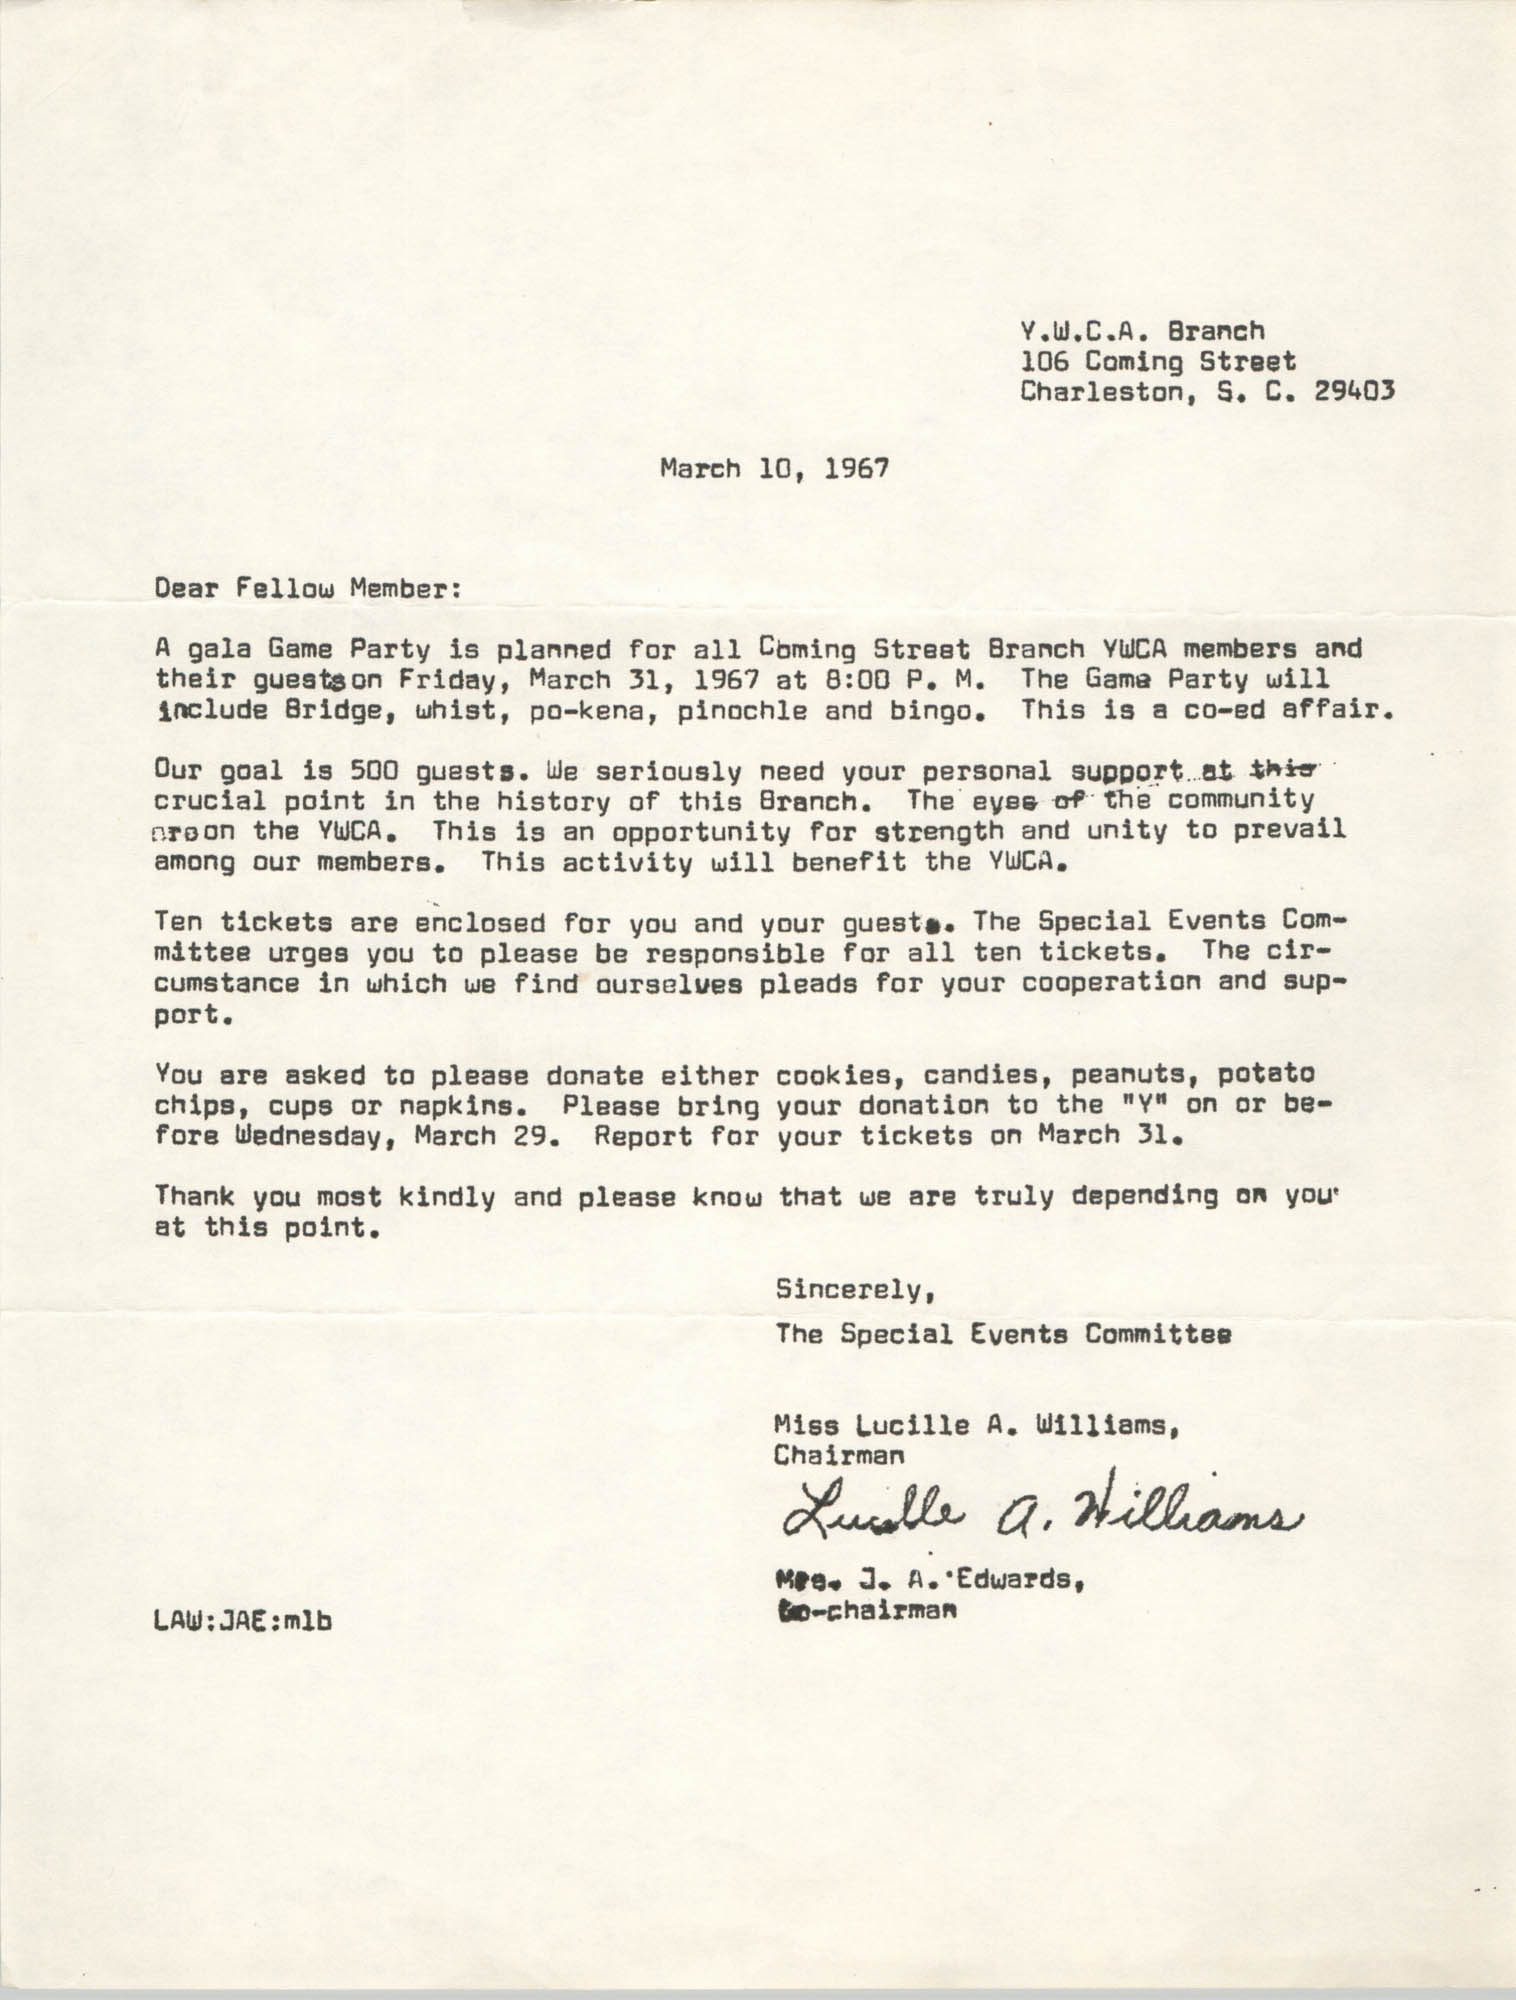 Letter from Lucille A. Williams and Mrs. J. A. Edwards to Coming Street Y.W.C.A. Members, March 10, 1967